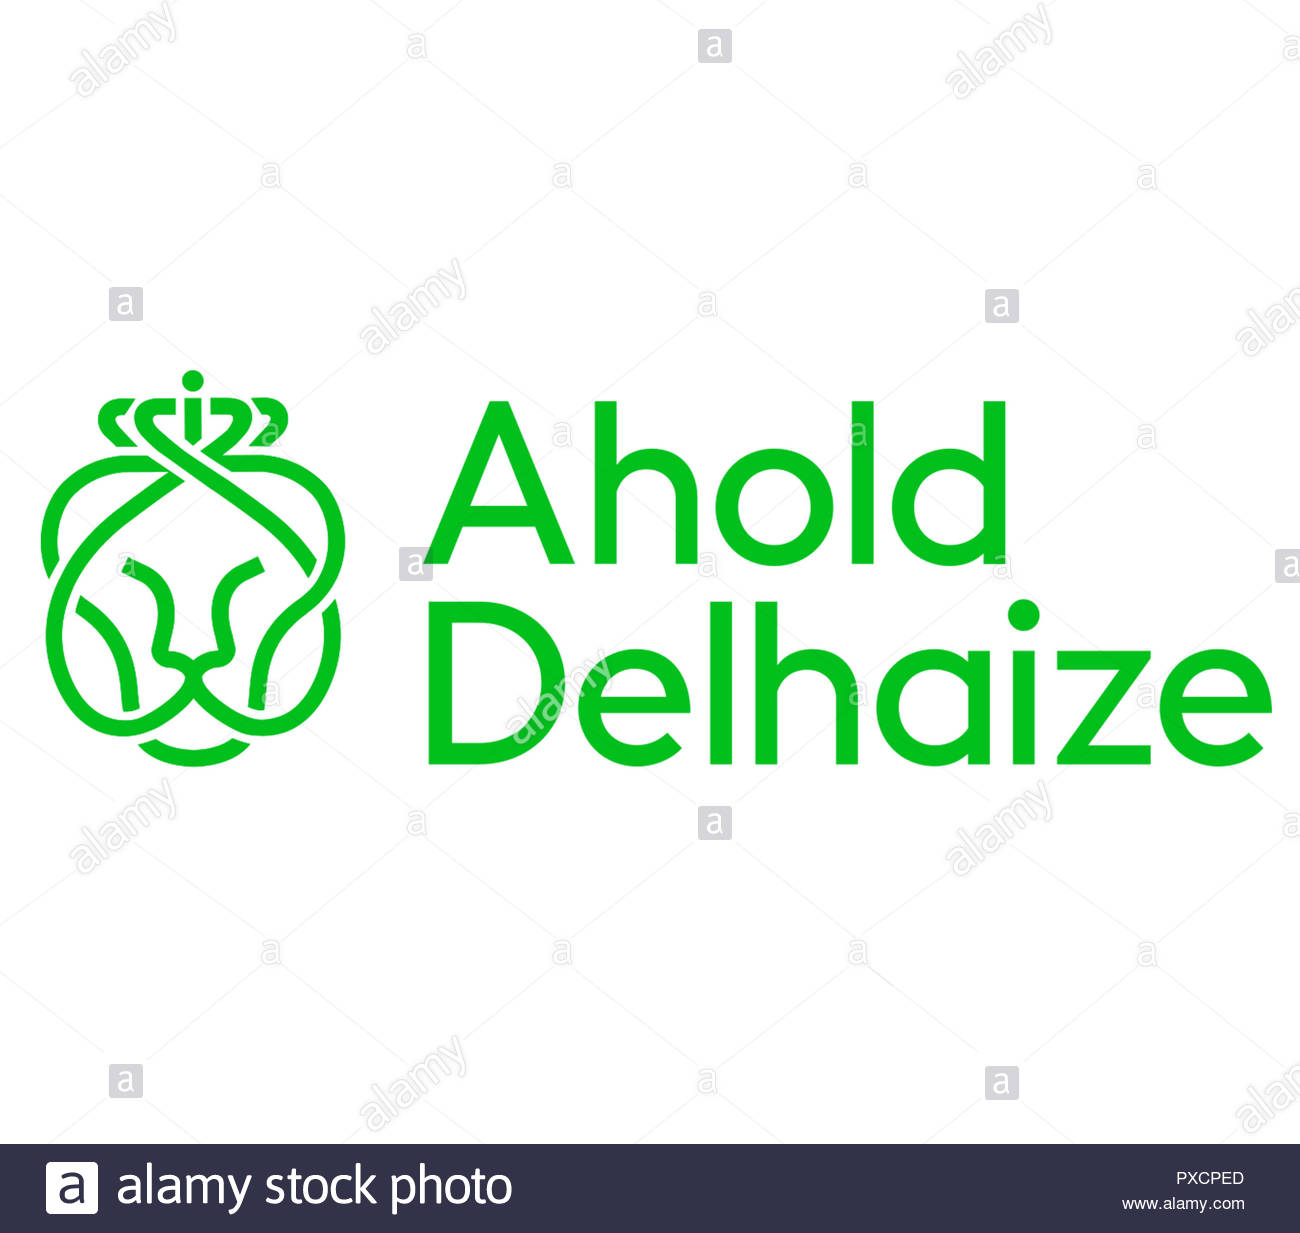 Ahold Delhaize logo sign - Stock Image